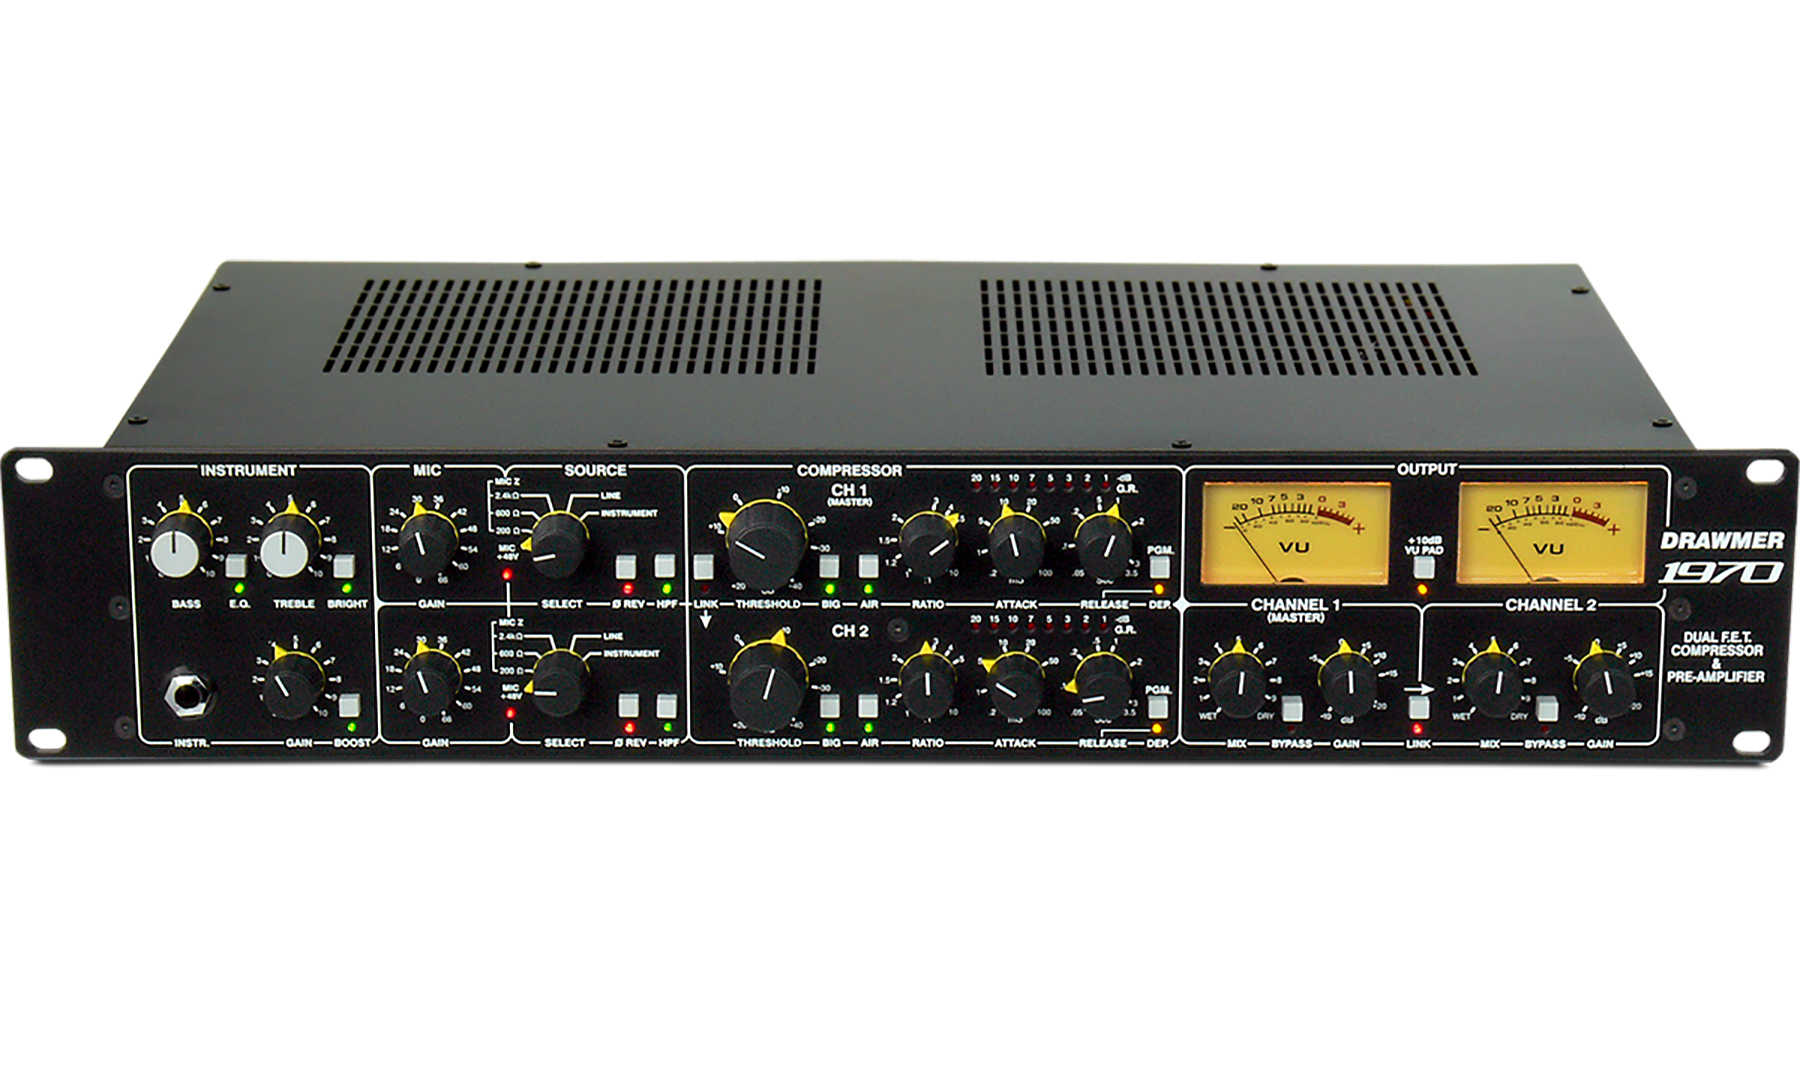 Check out the Brand New Drawmer 1970 Dual Compressor and Preamp!